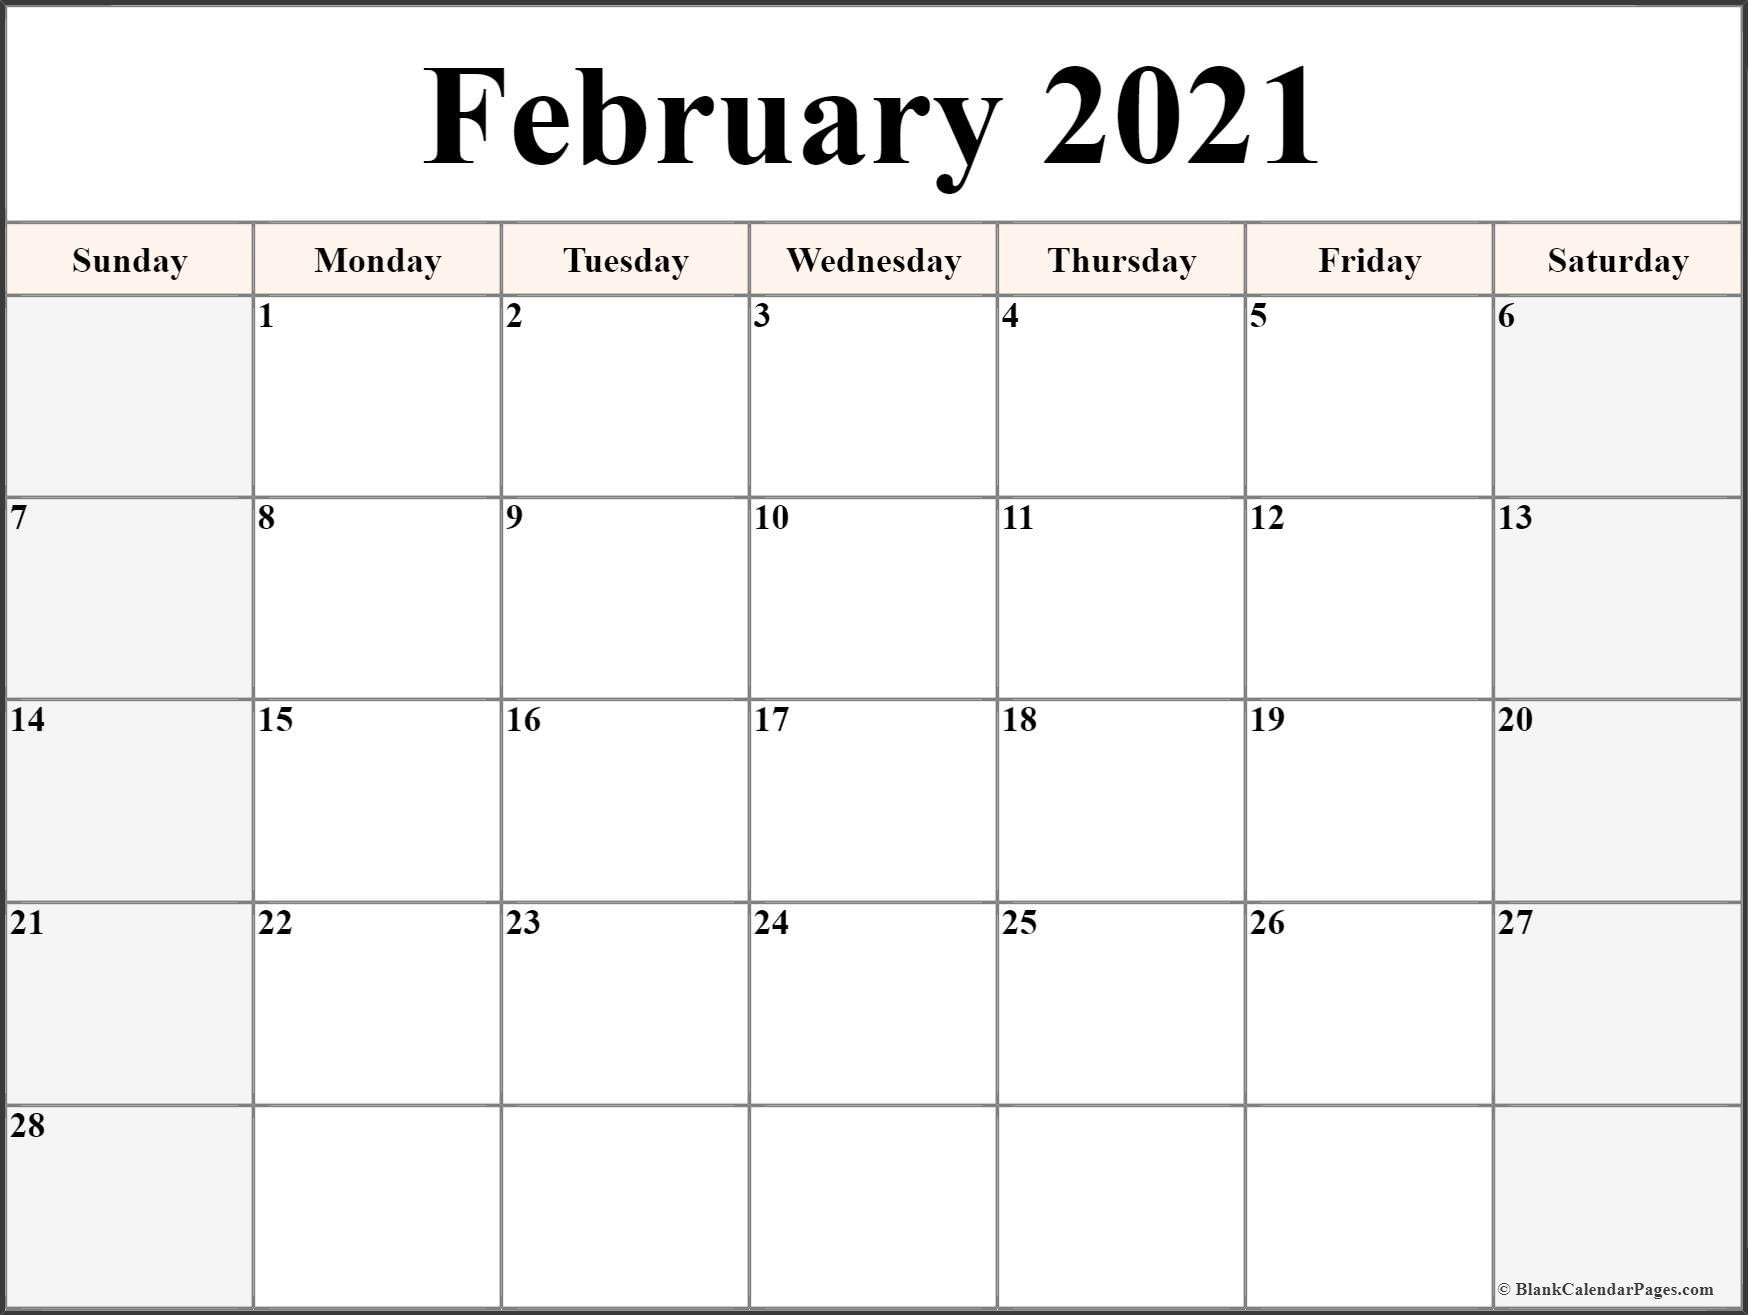 February 2021 Calendar | Free Printable Monthly Calendars  February Blank Calendar Printable